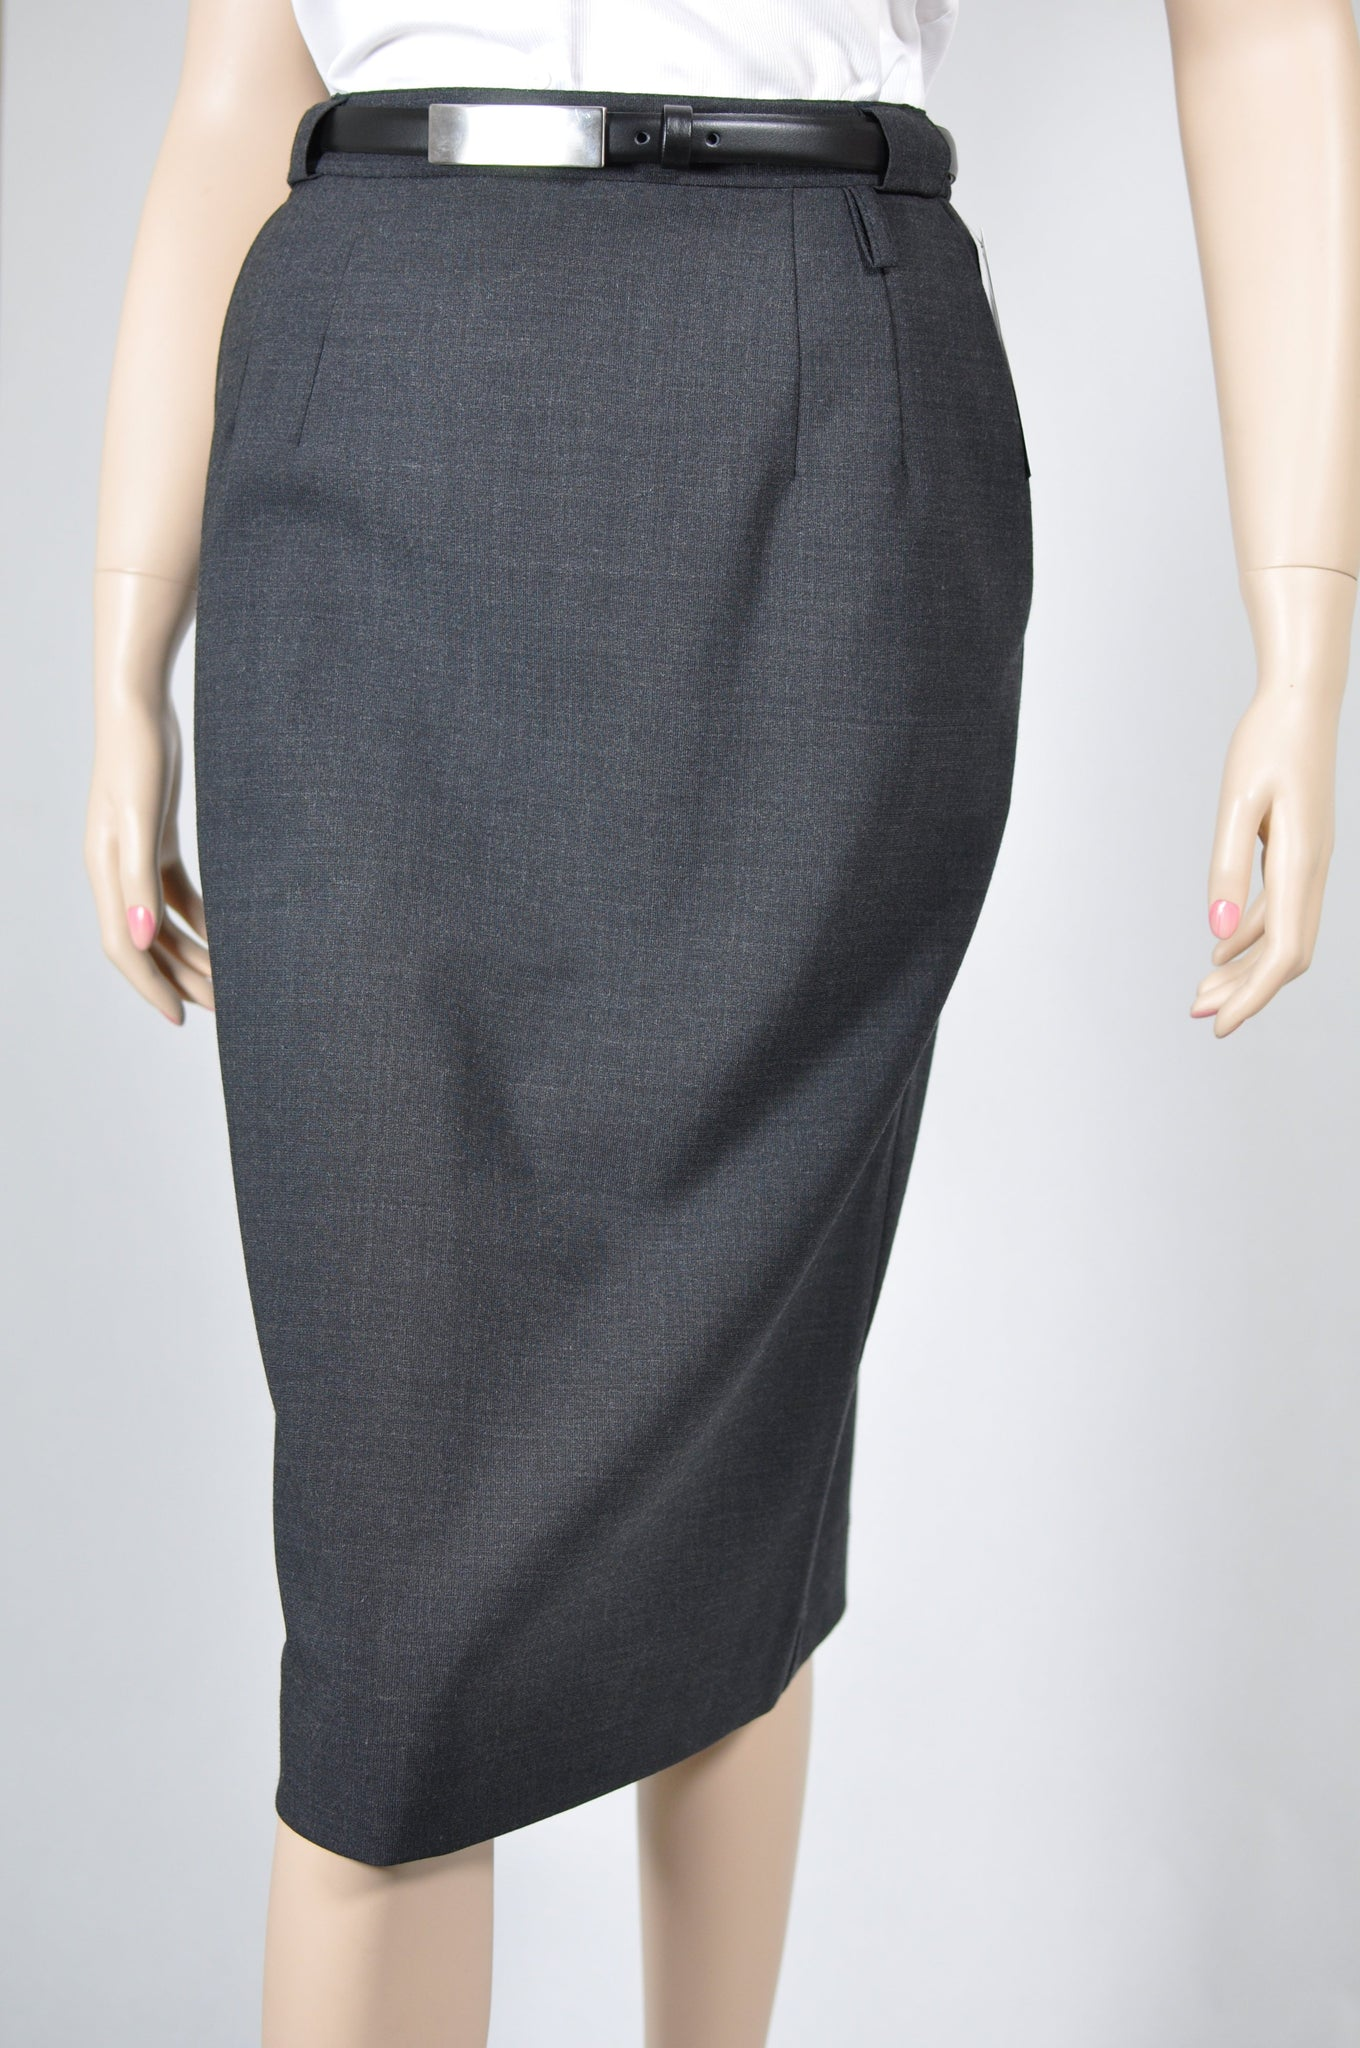 Polywool Z Stretch - Ladies Easyfit Charcoal Skirt